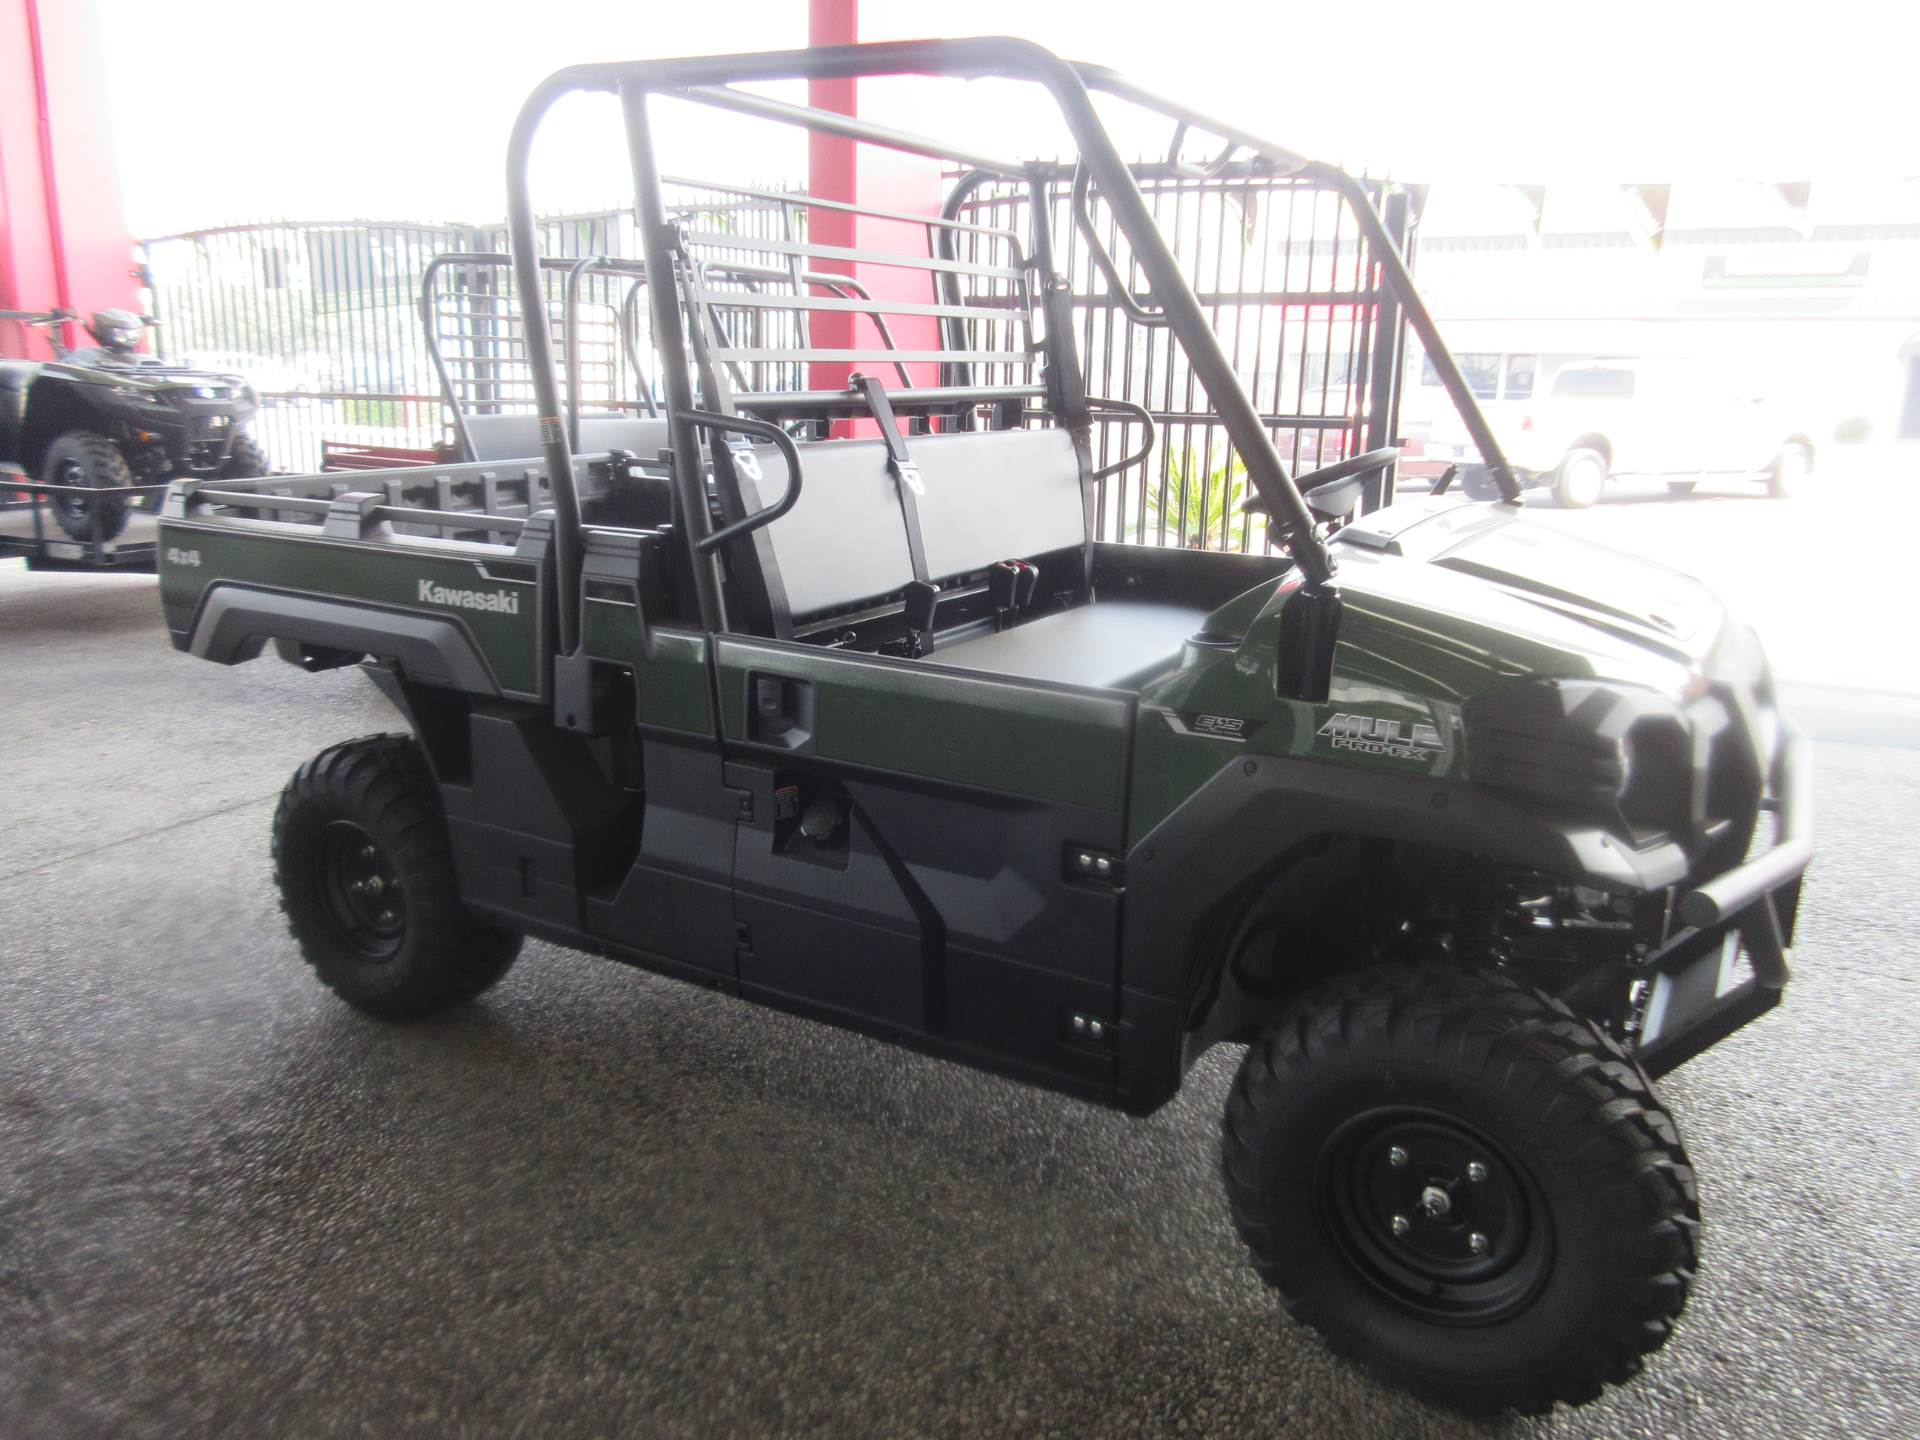 2020 Kawasaki Mule PRO-FX EPS in Sacramento, California - Photo 2